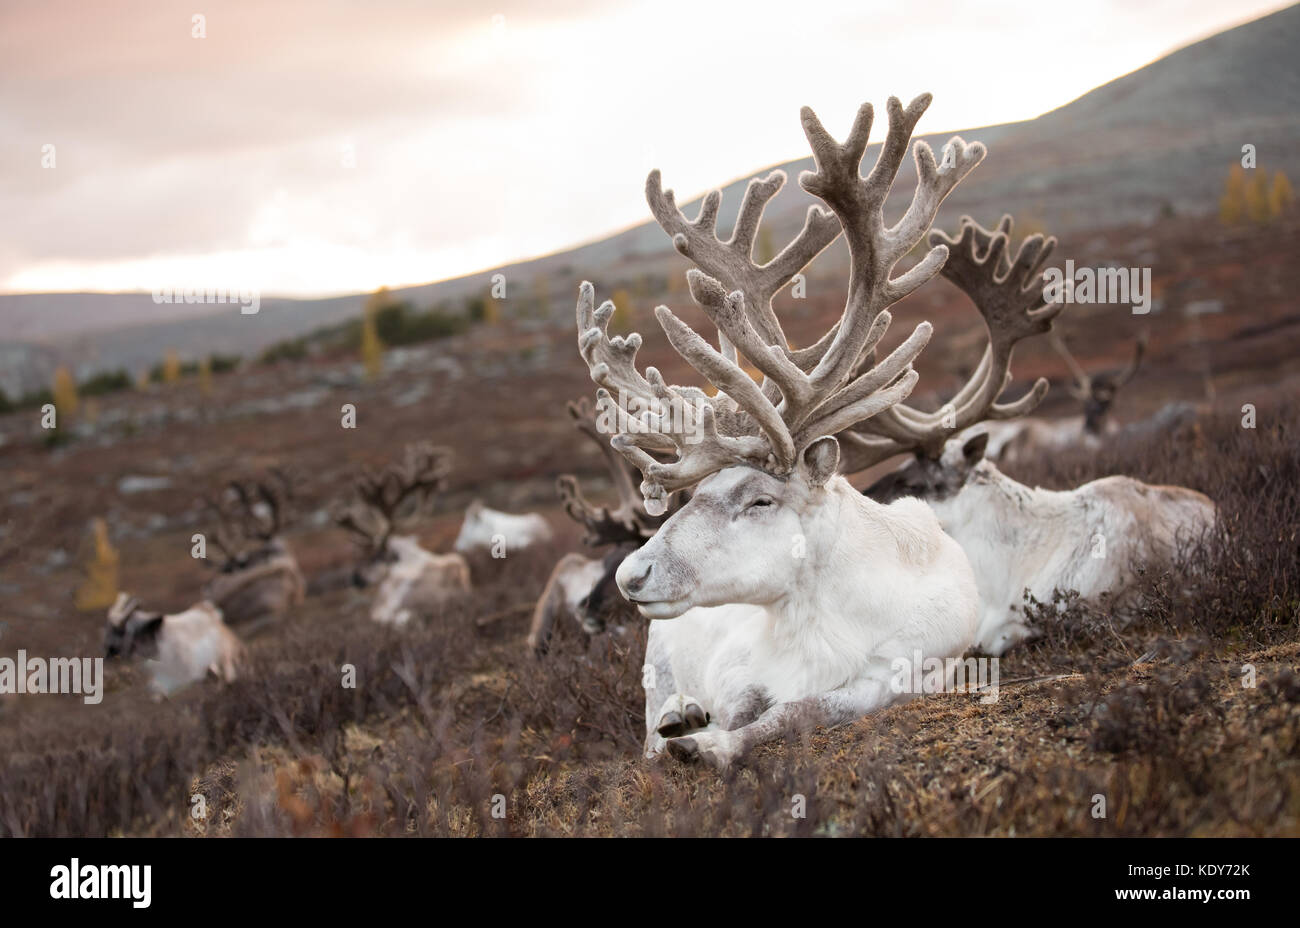 Portrait of a old reindeer with magnificent antlers sleeping on an autumn morning. Khuvsgol, Mongolia. - Stock Image